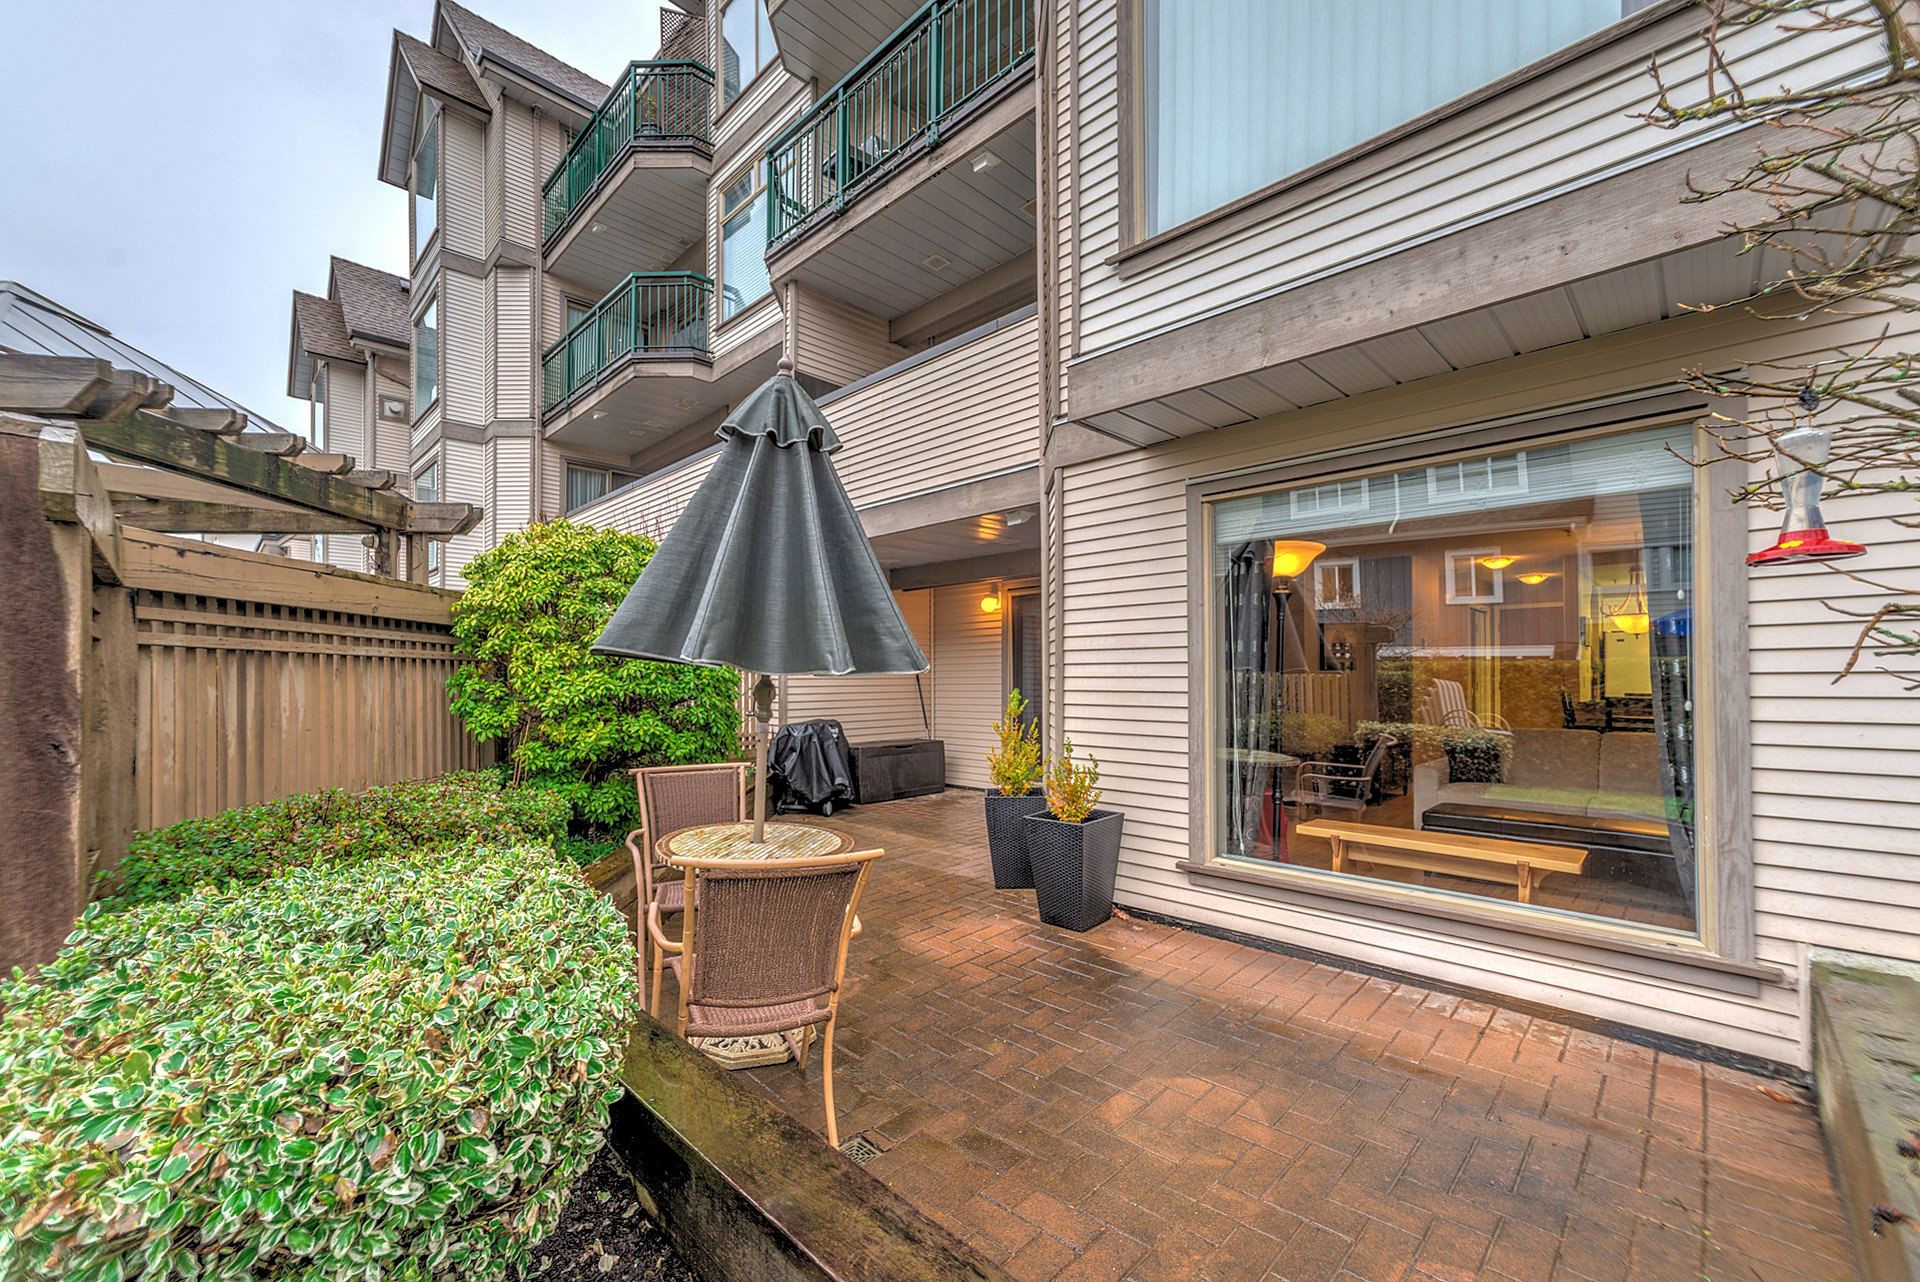 31207_20 at 105 - 1650 Grant Avenue, Glenwood PQ, Port Coquitlam